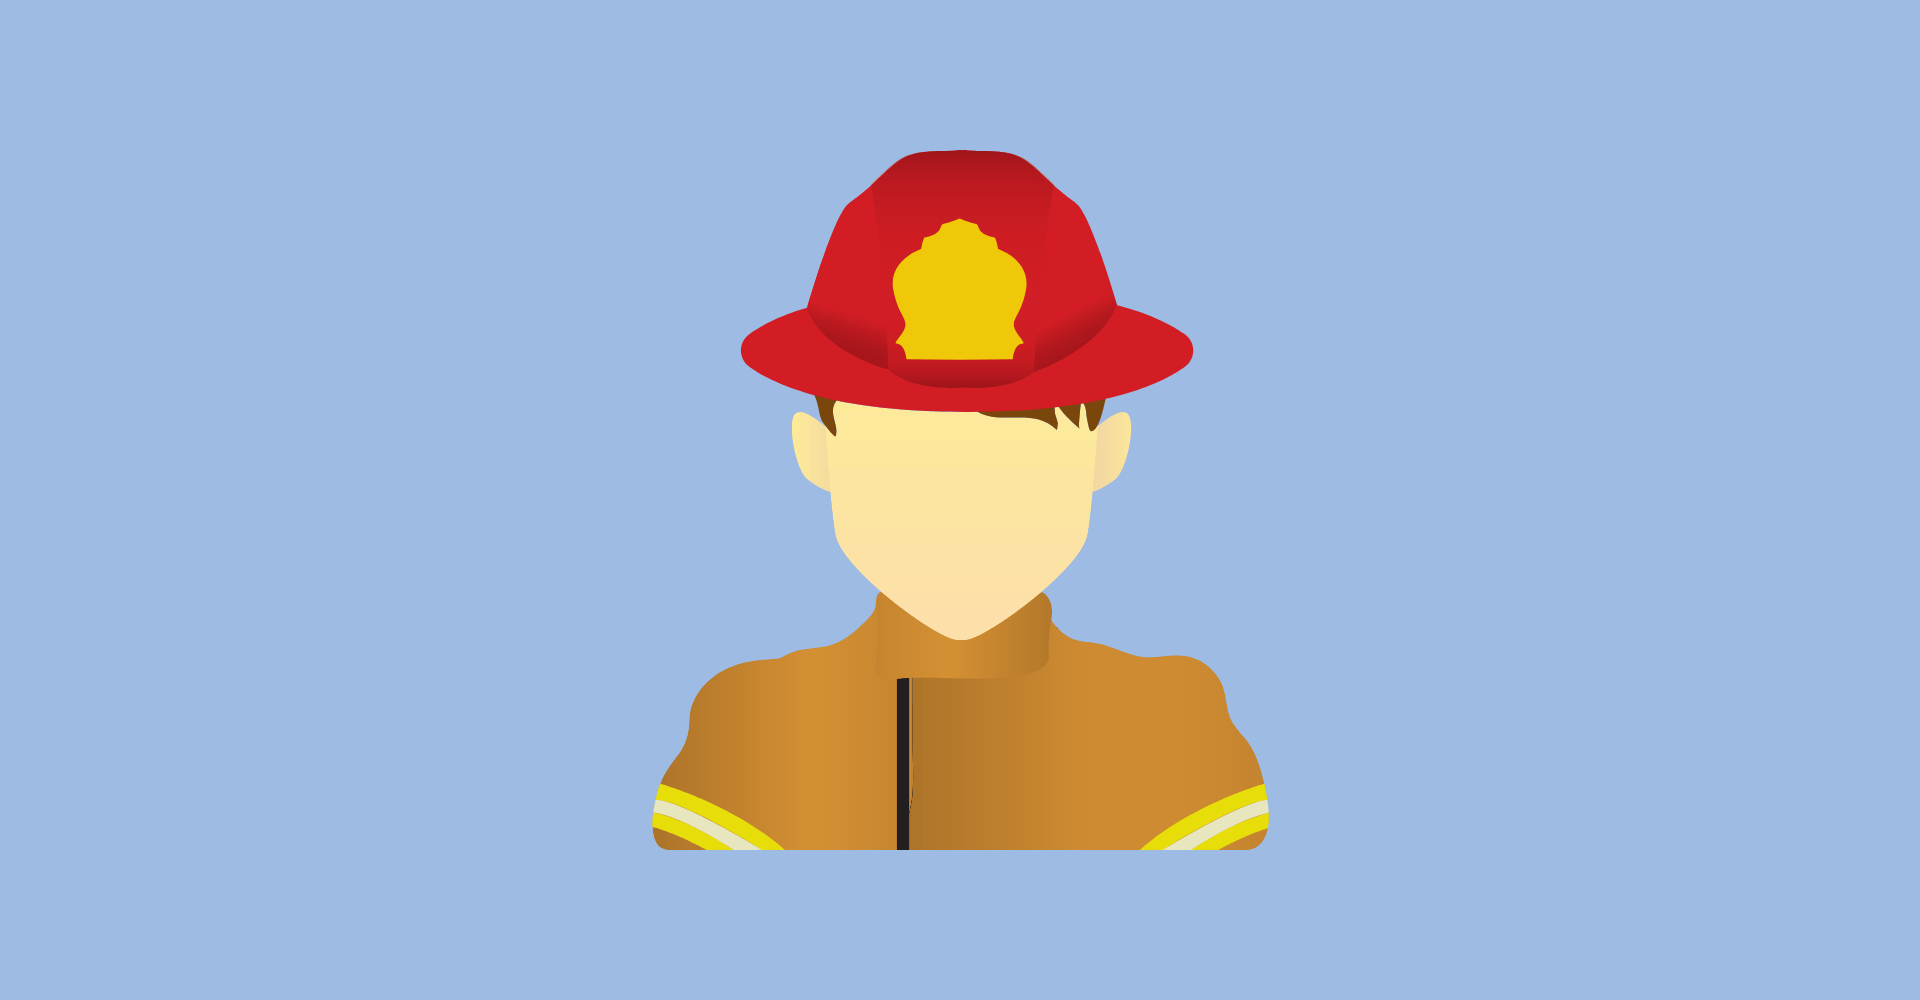 59 Hot Firefighter Gifts for the Coolest Firefighter in Your Life